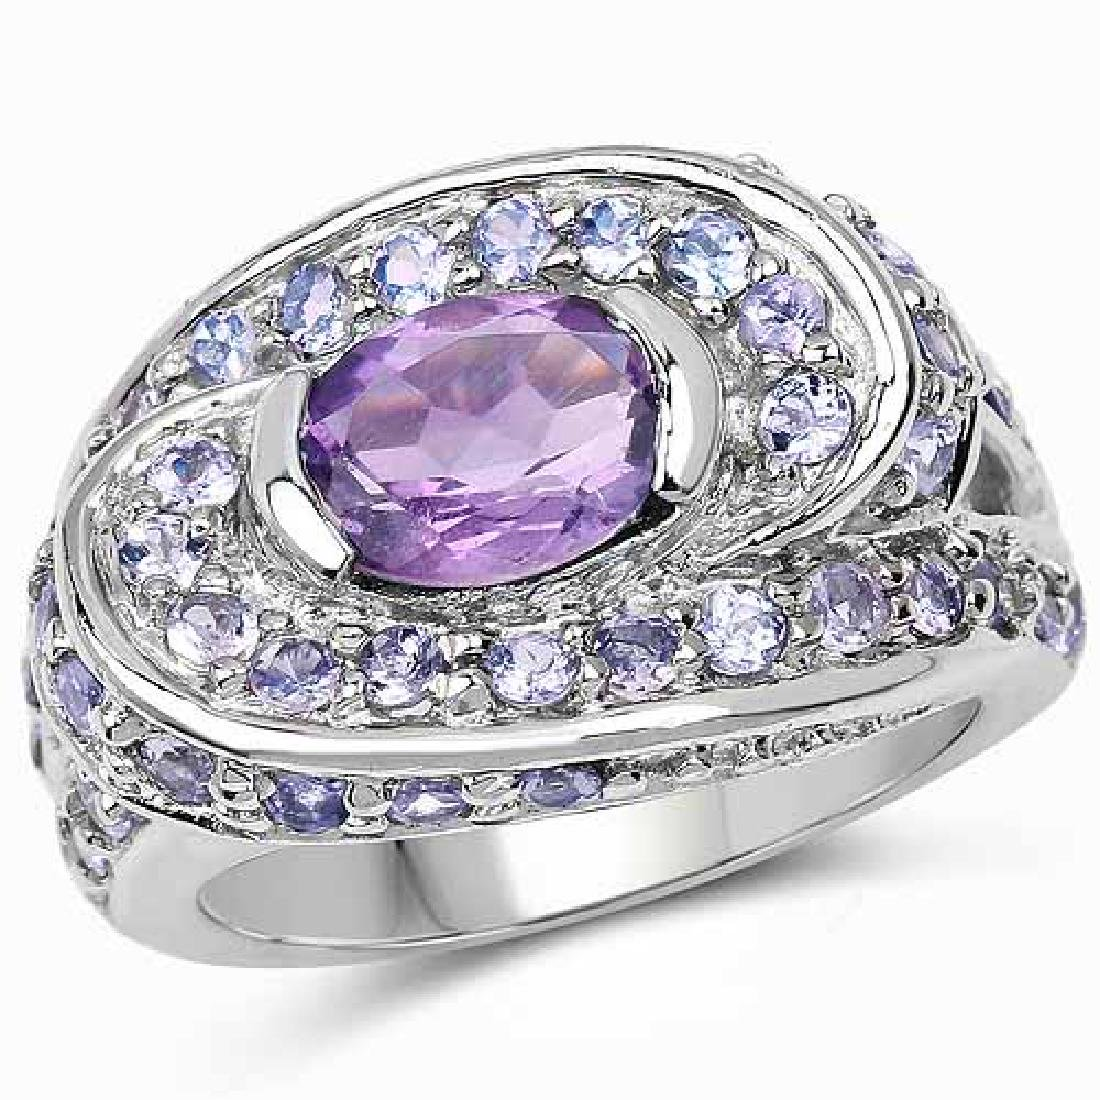 2.76 Carat Genuine Amethyst and Tanzanite .925 Sterling